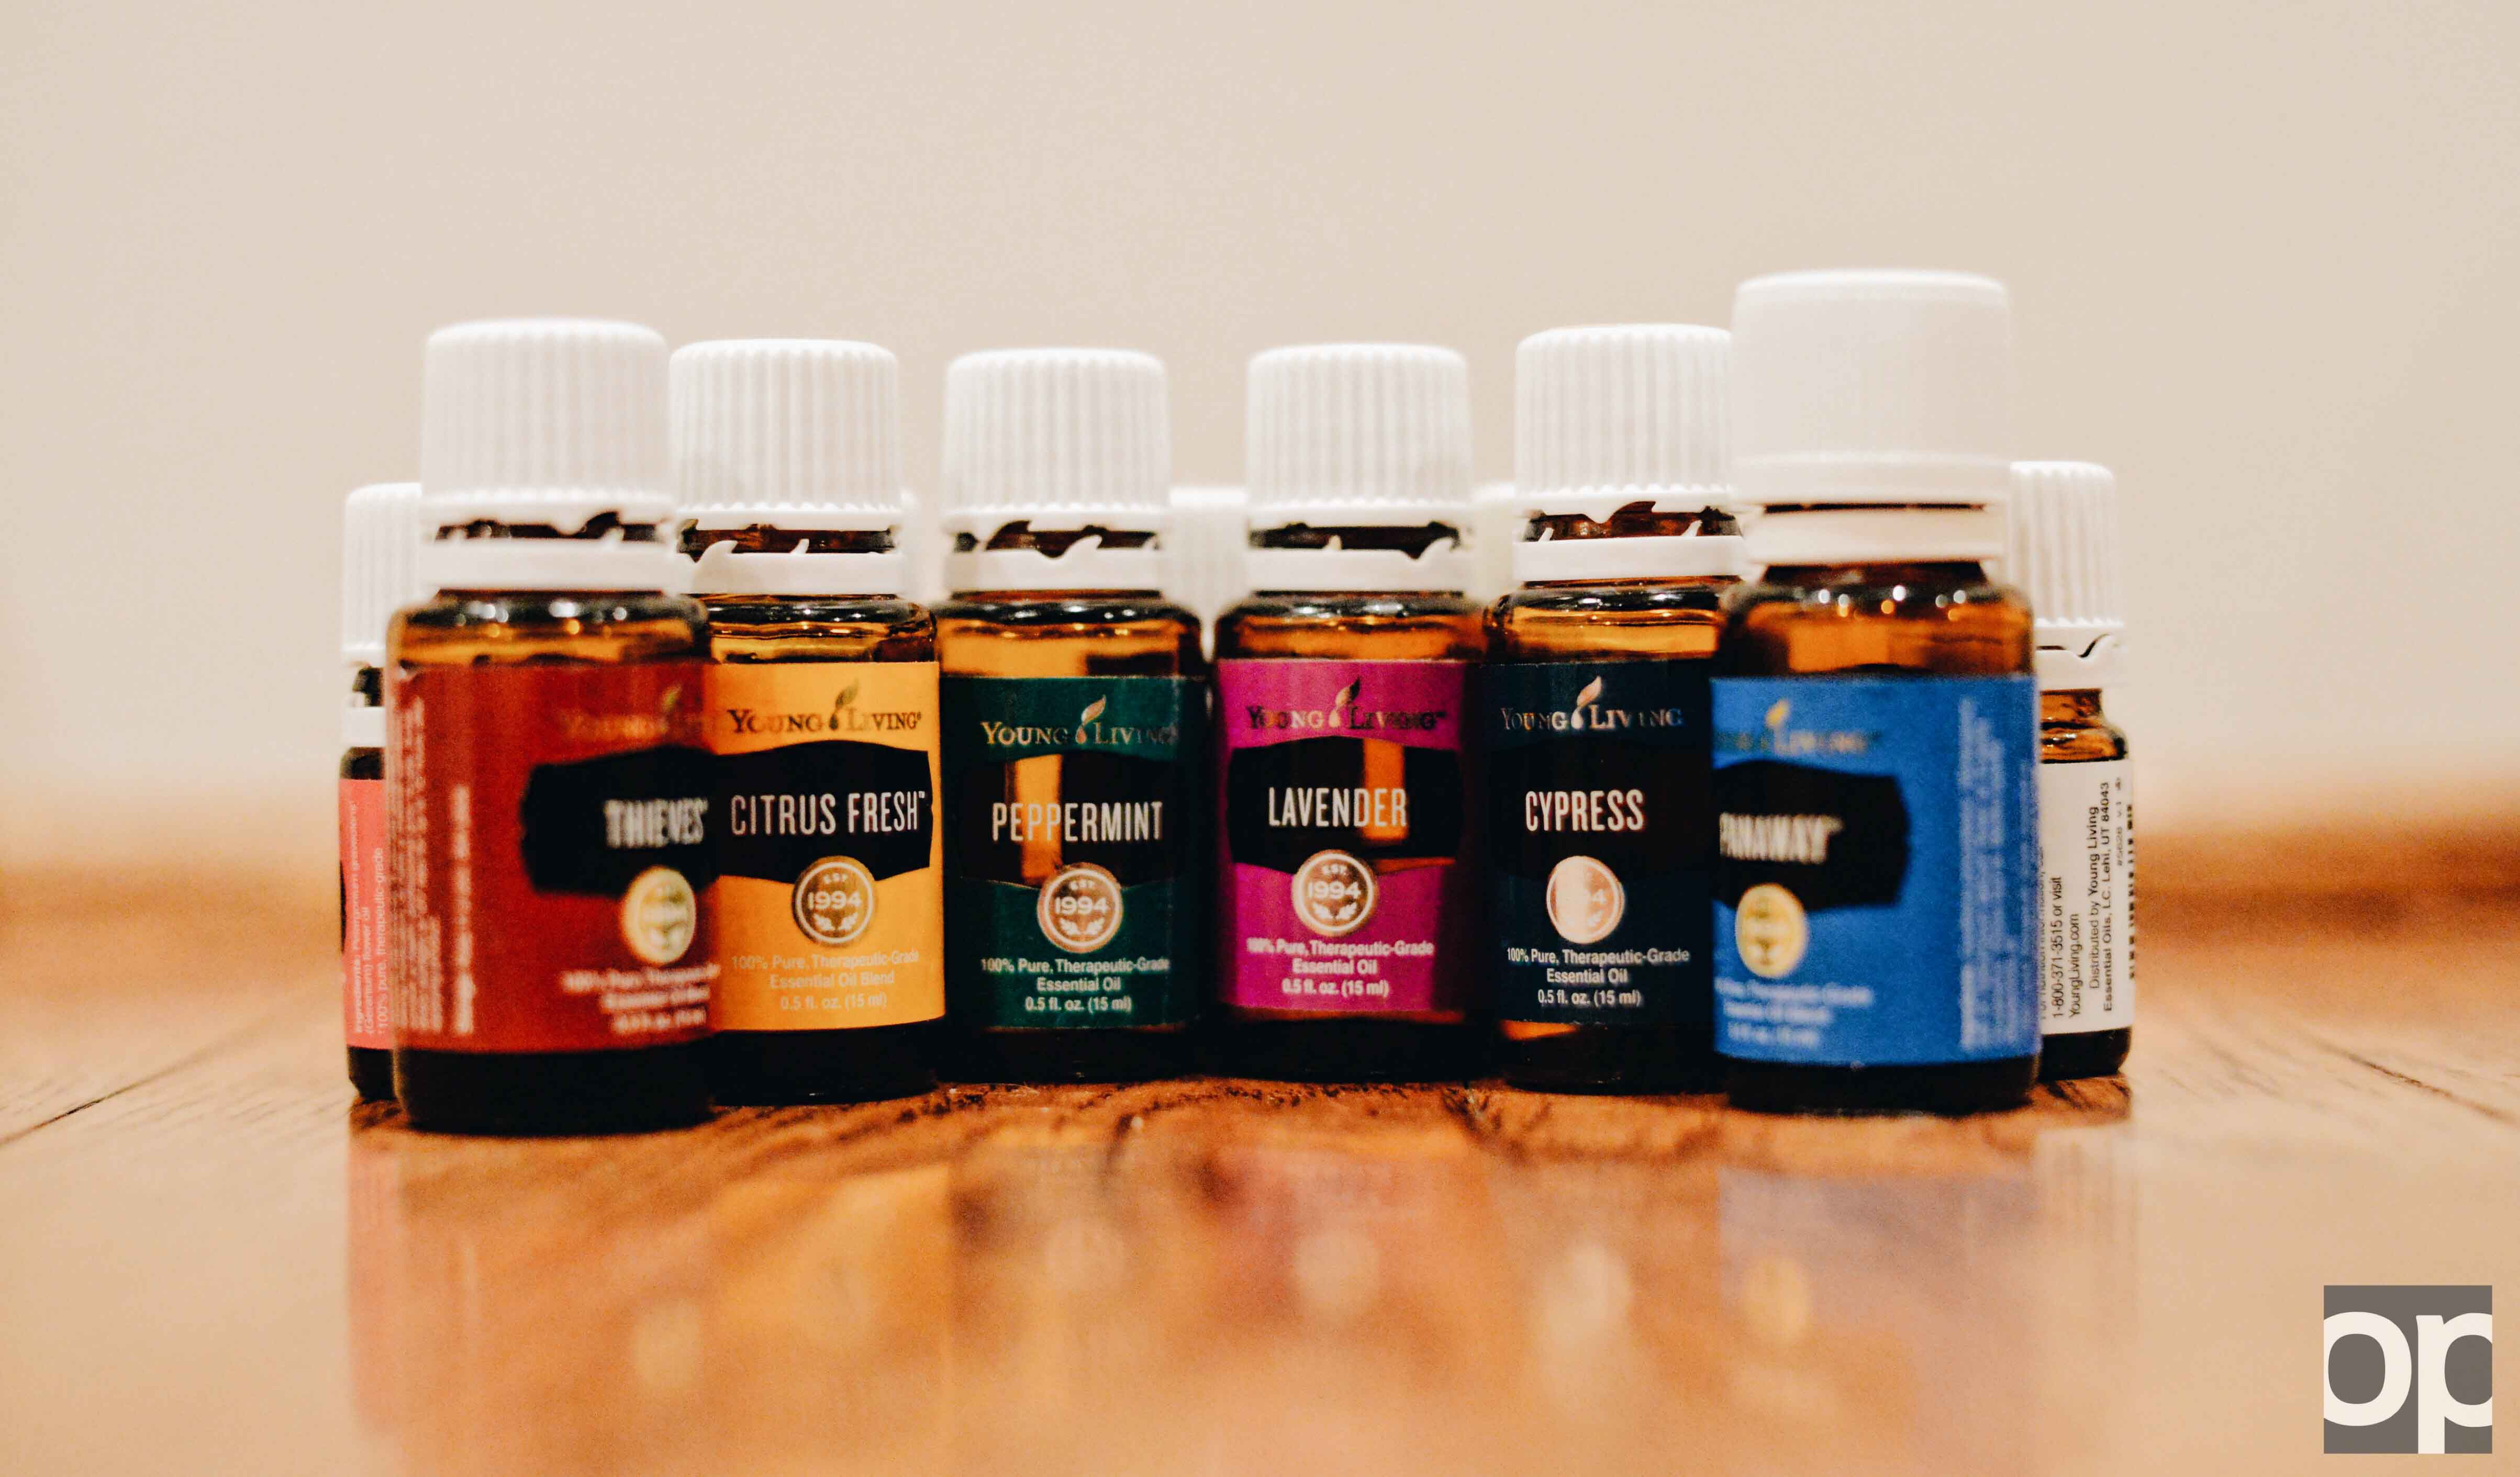 Health and wellness consultant Julie Berry says essential oils have changed her family's lifestyle.